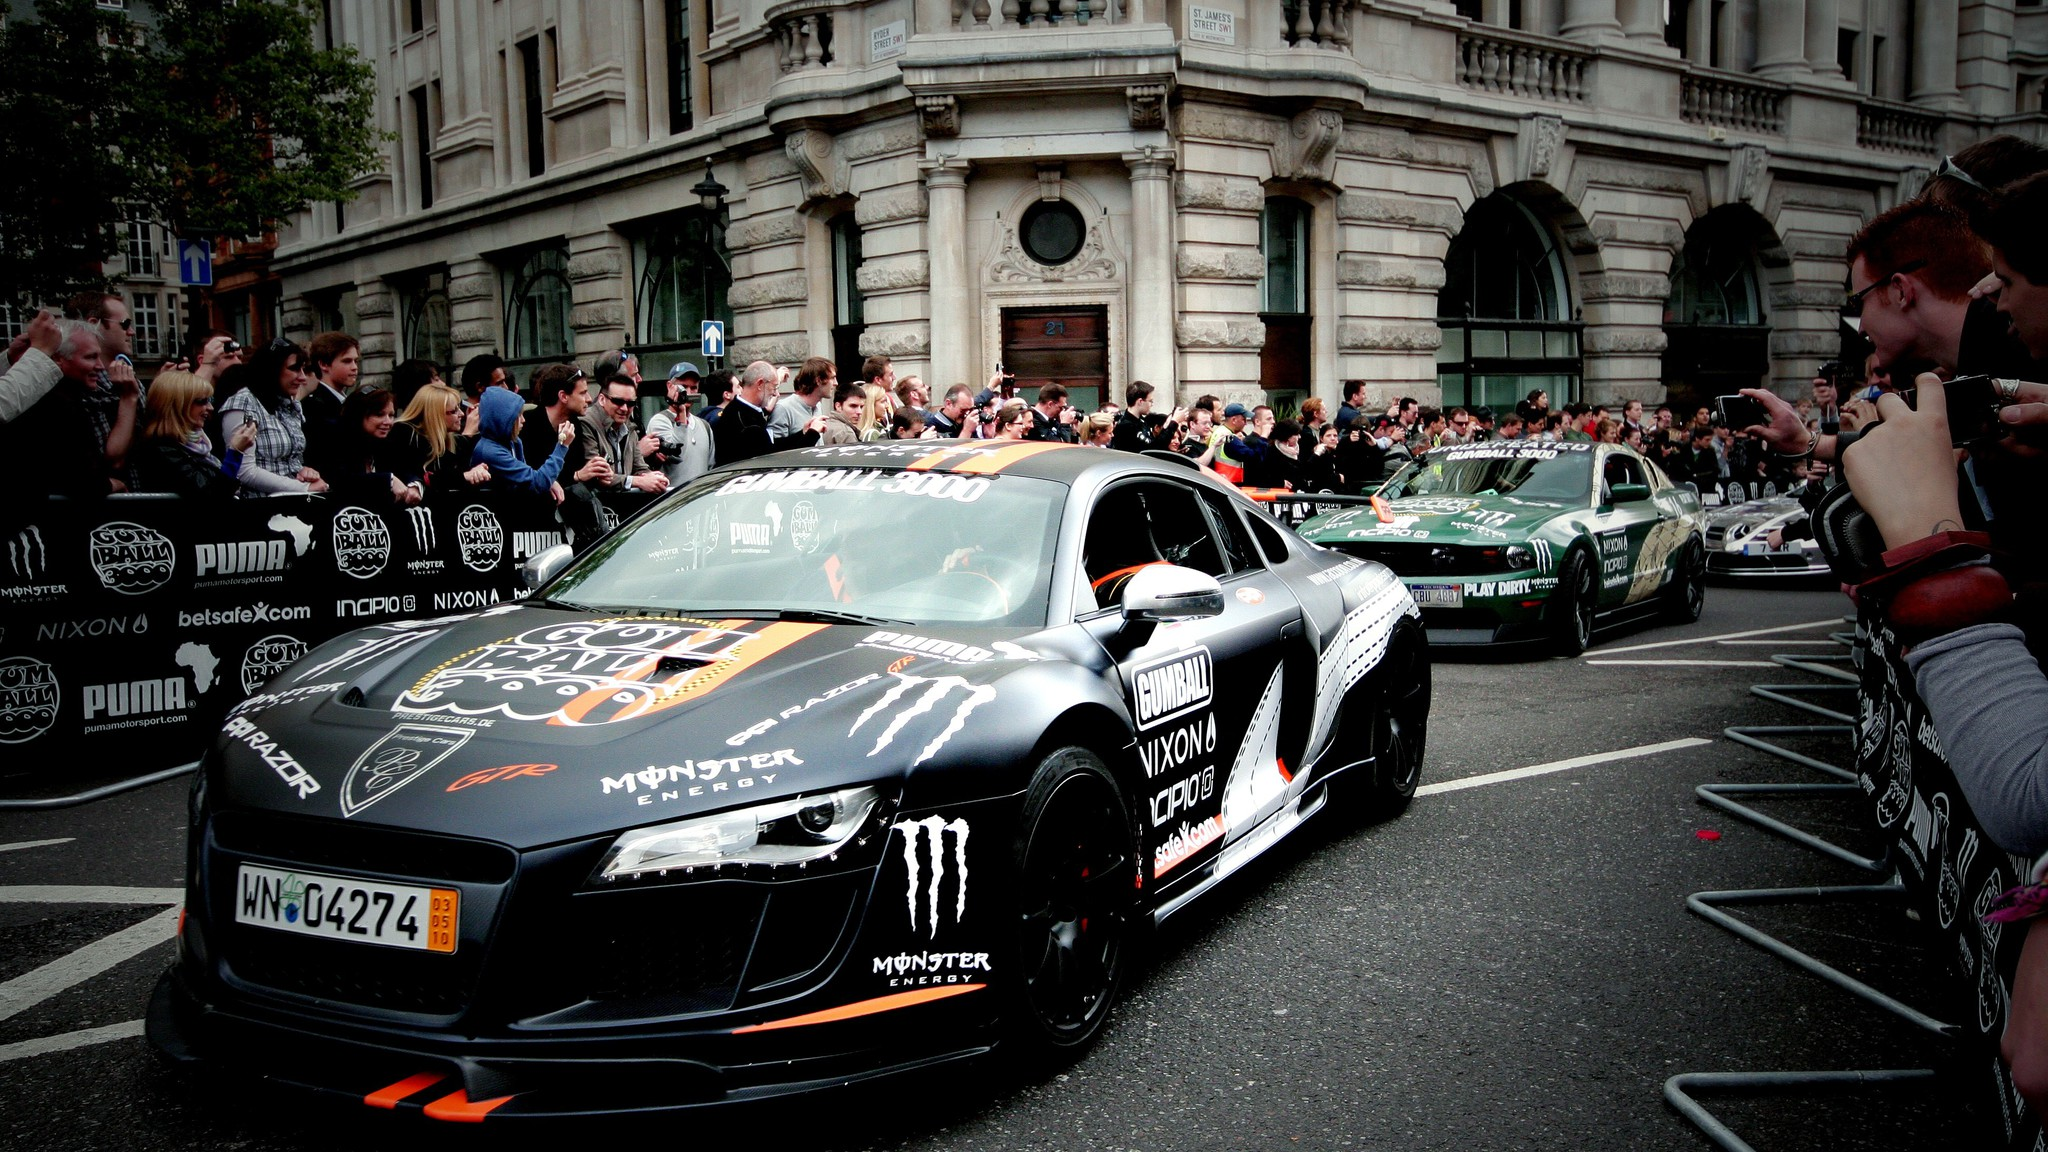 cars sport gumball 3000 line luxury races wallpapers pc hd allwallpaper dslr